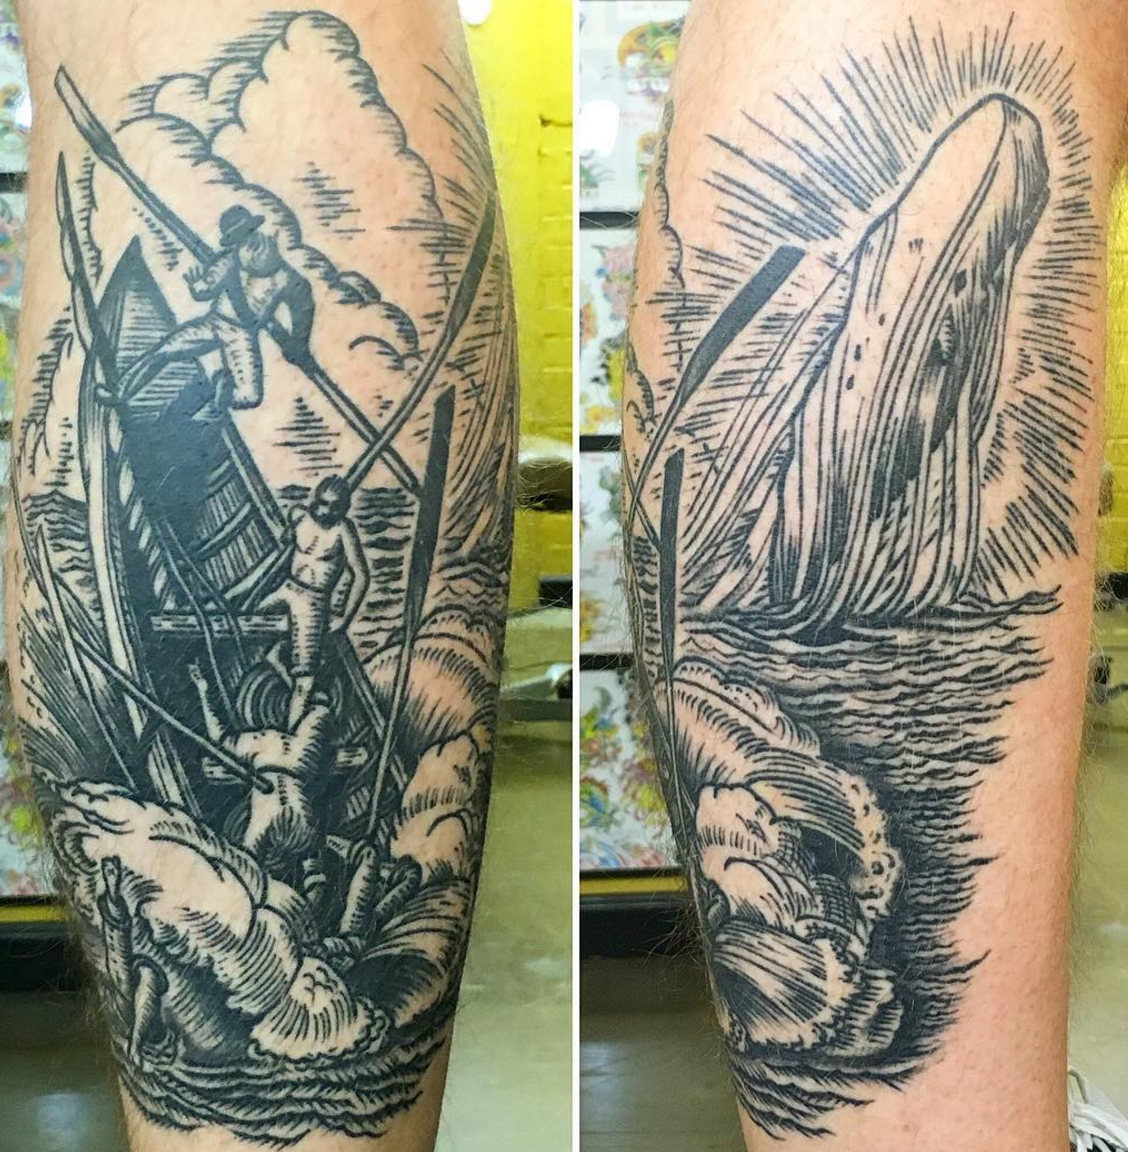 Moby dick tattoo meaning moby dick pinterest tattoo whale moby dick tattoo meaning buycottarizona Gallery